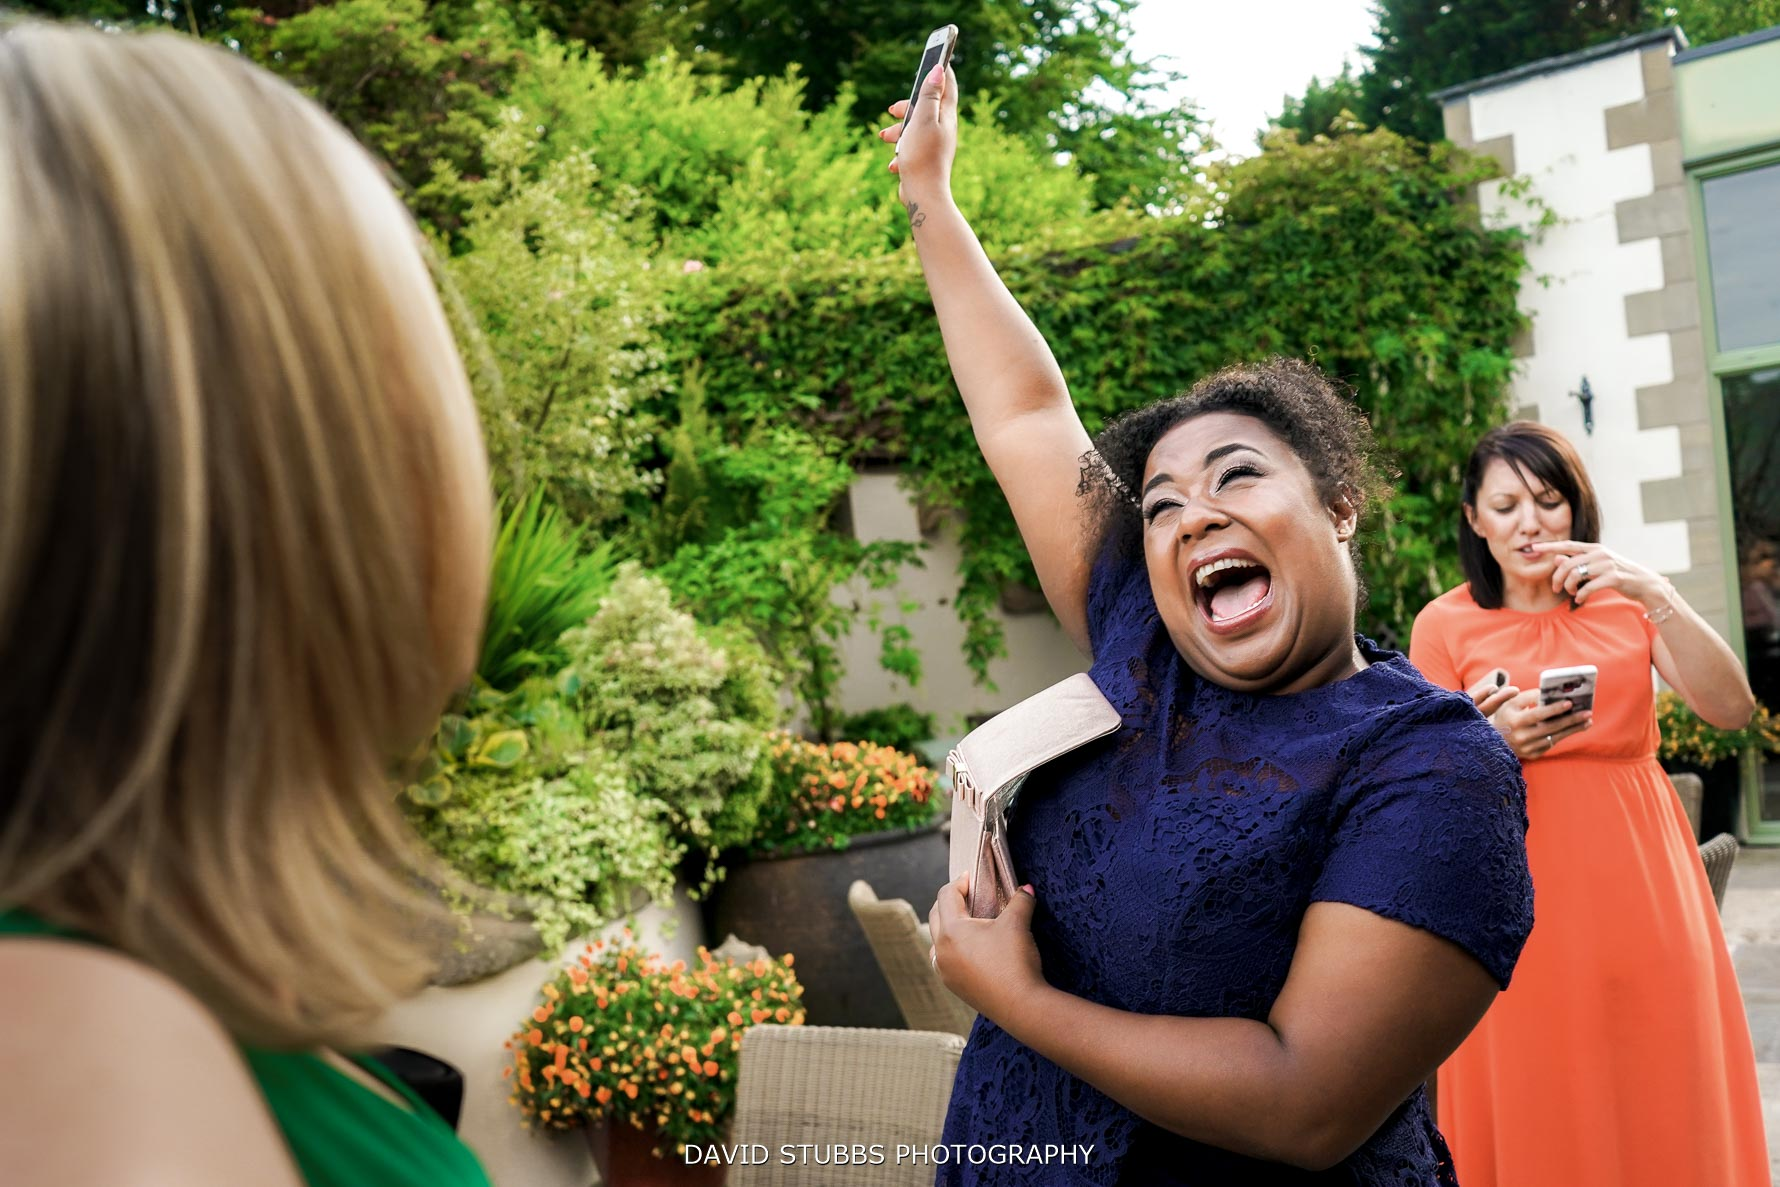 funny photo of wedding guest